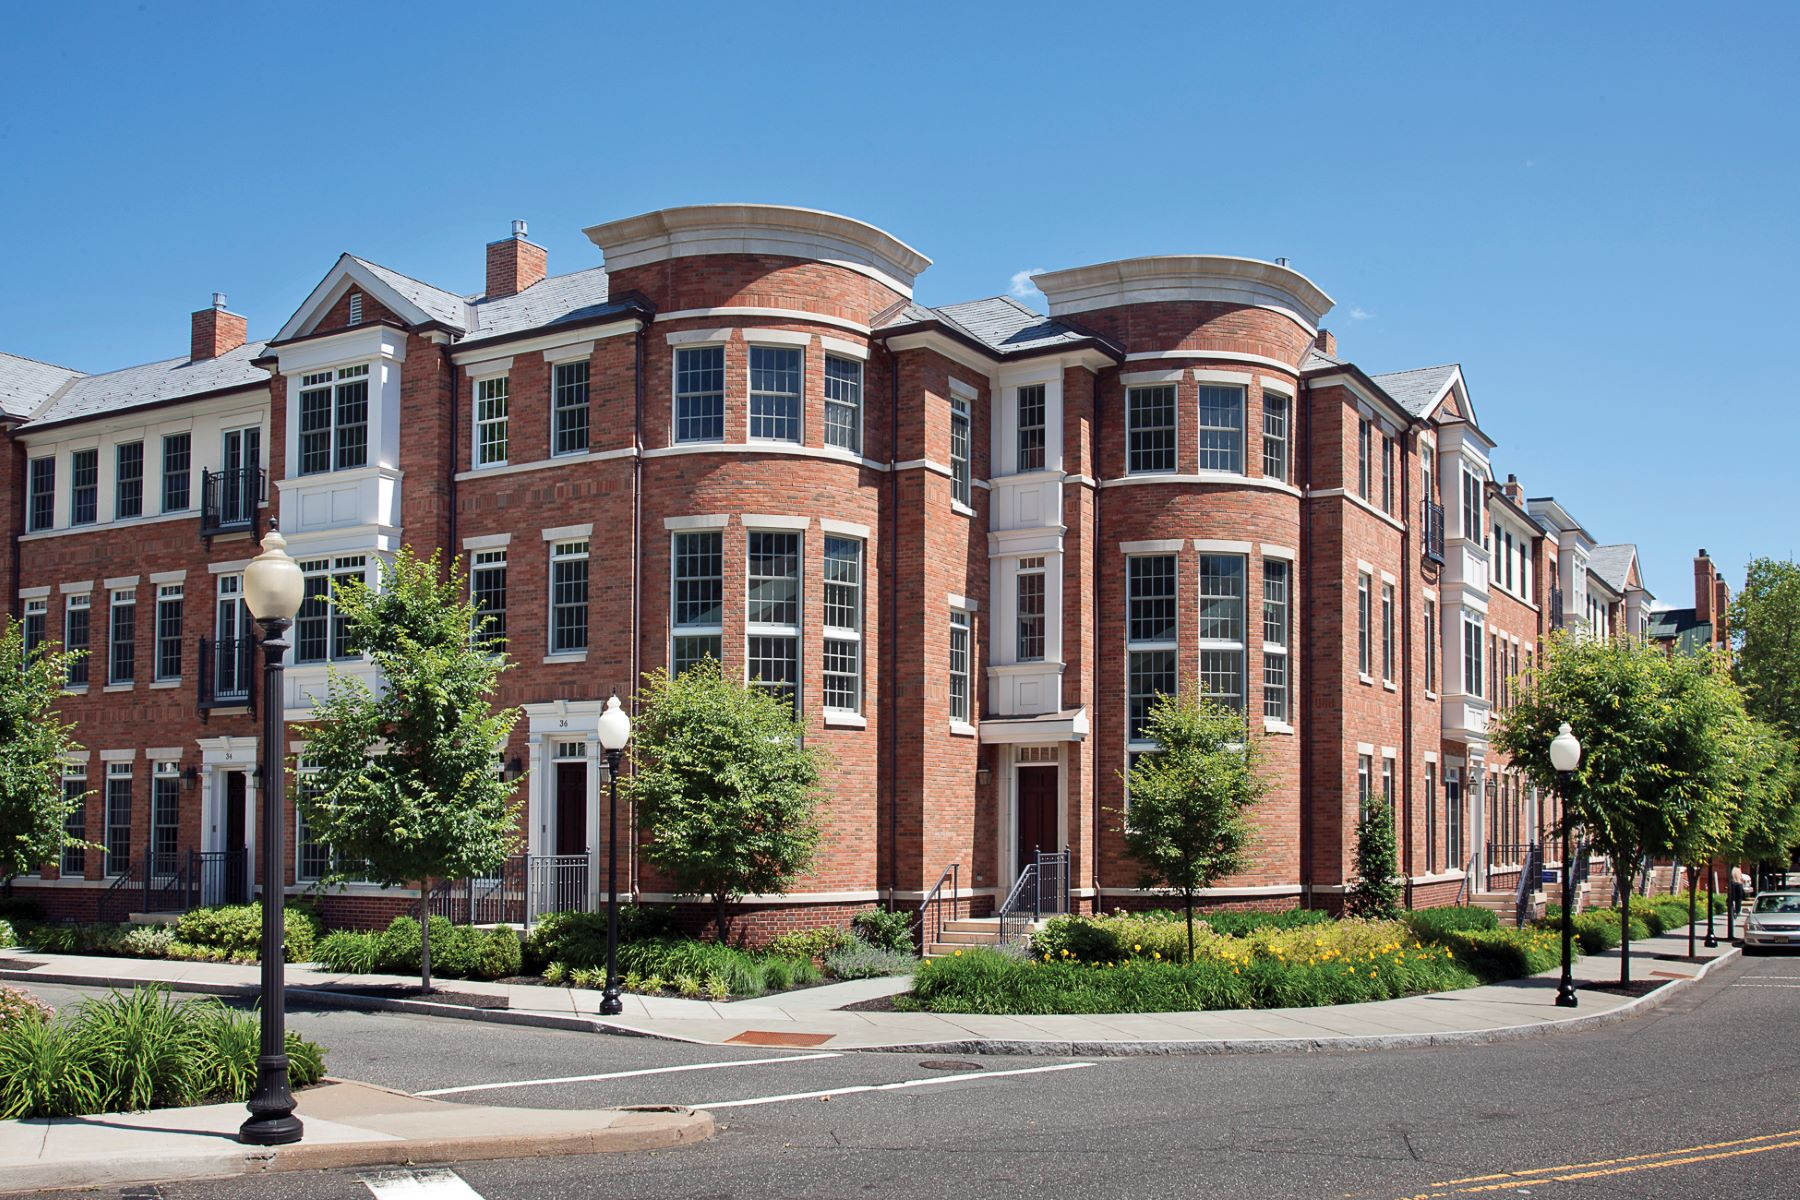 Moradia em banda para Venda às Luxurious Townhome in the Heart of Princeton 22 Paul Robeson Place Princeton, Nova Jersey, 08540 Estados Unidos